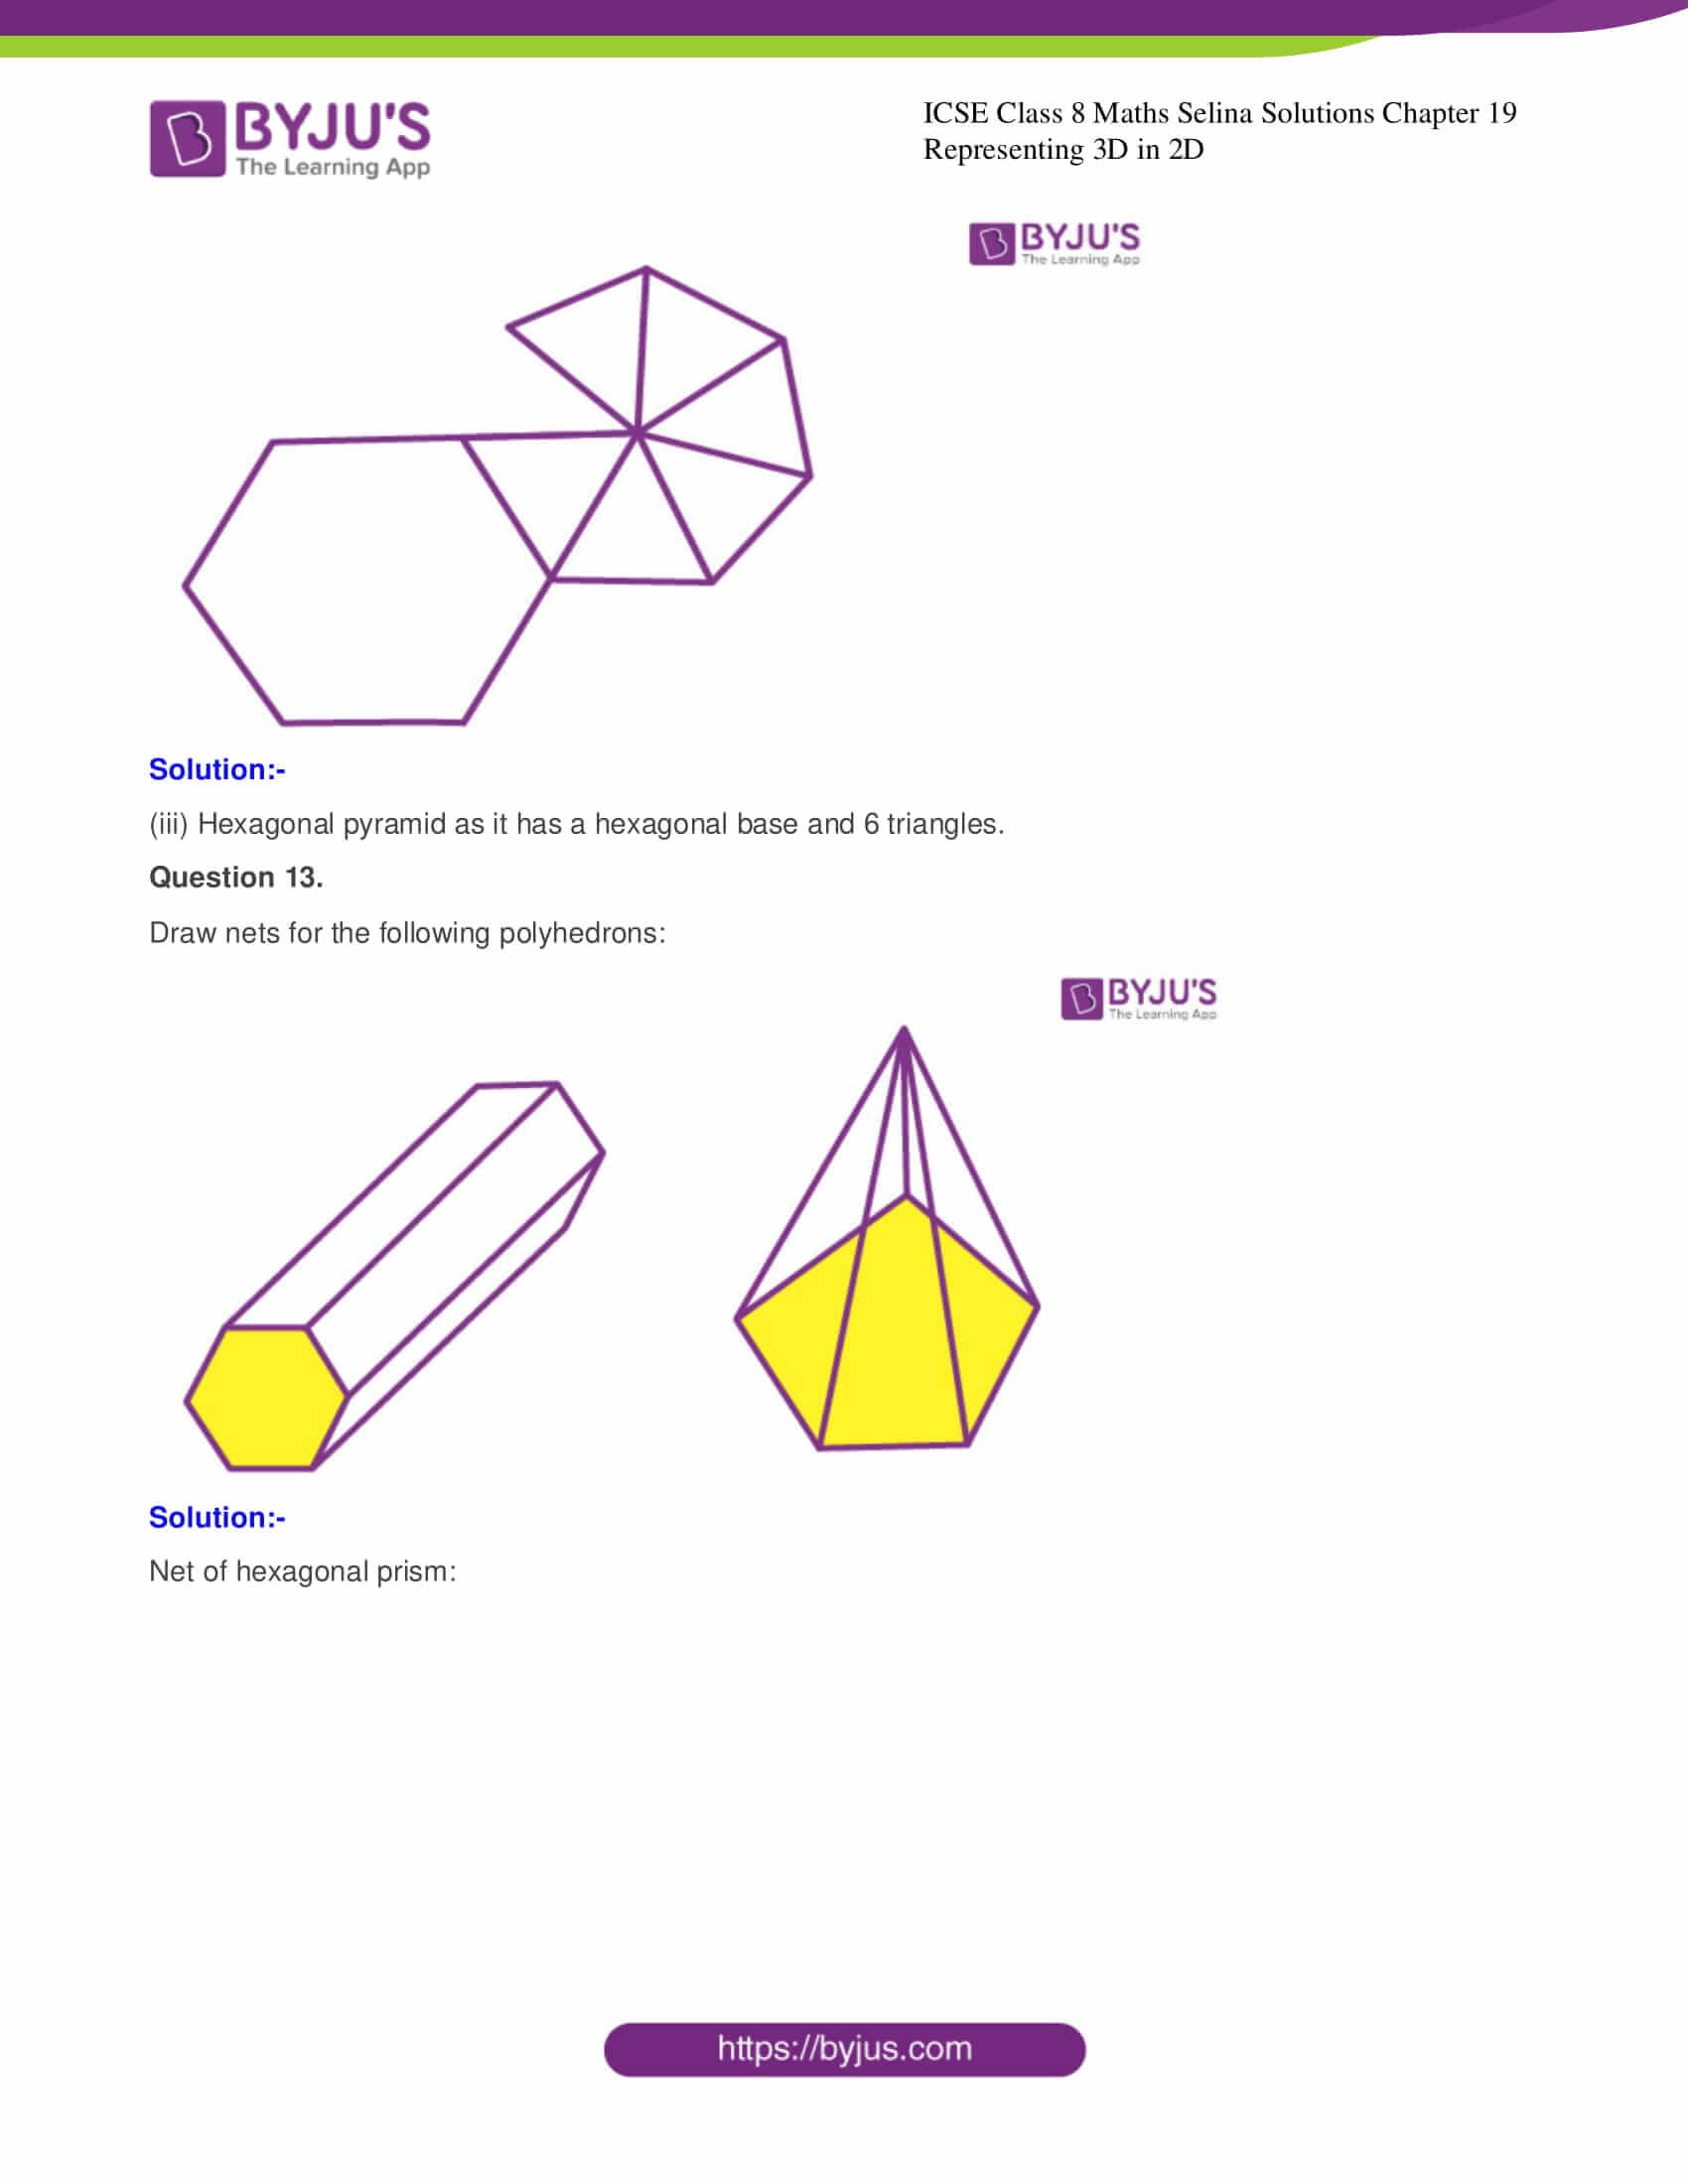 icse class 8 maths may3 selina solutions chapter 19 representing 3d in 2d 8